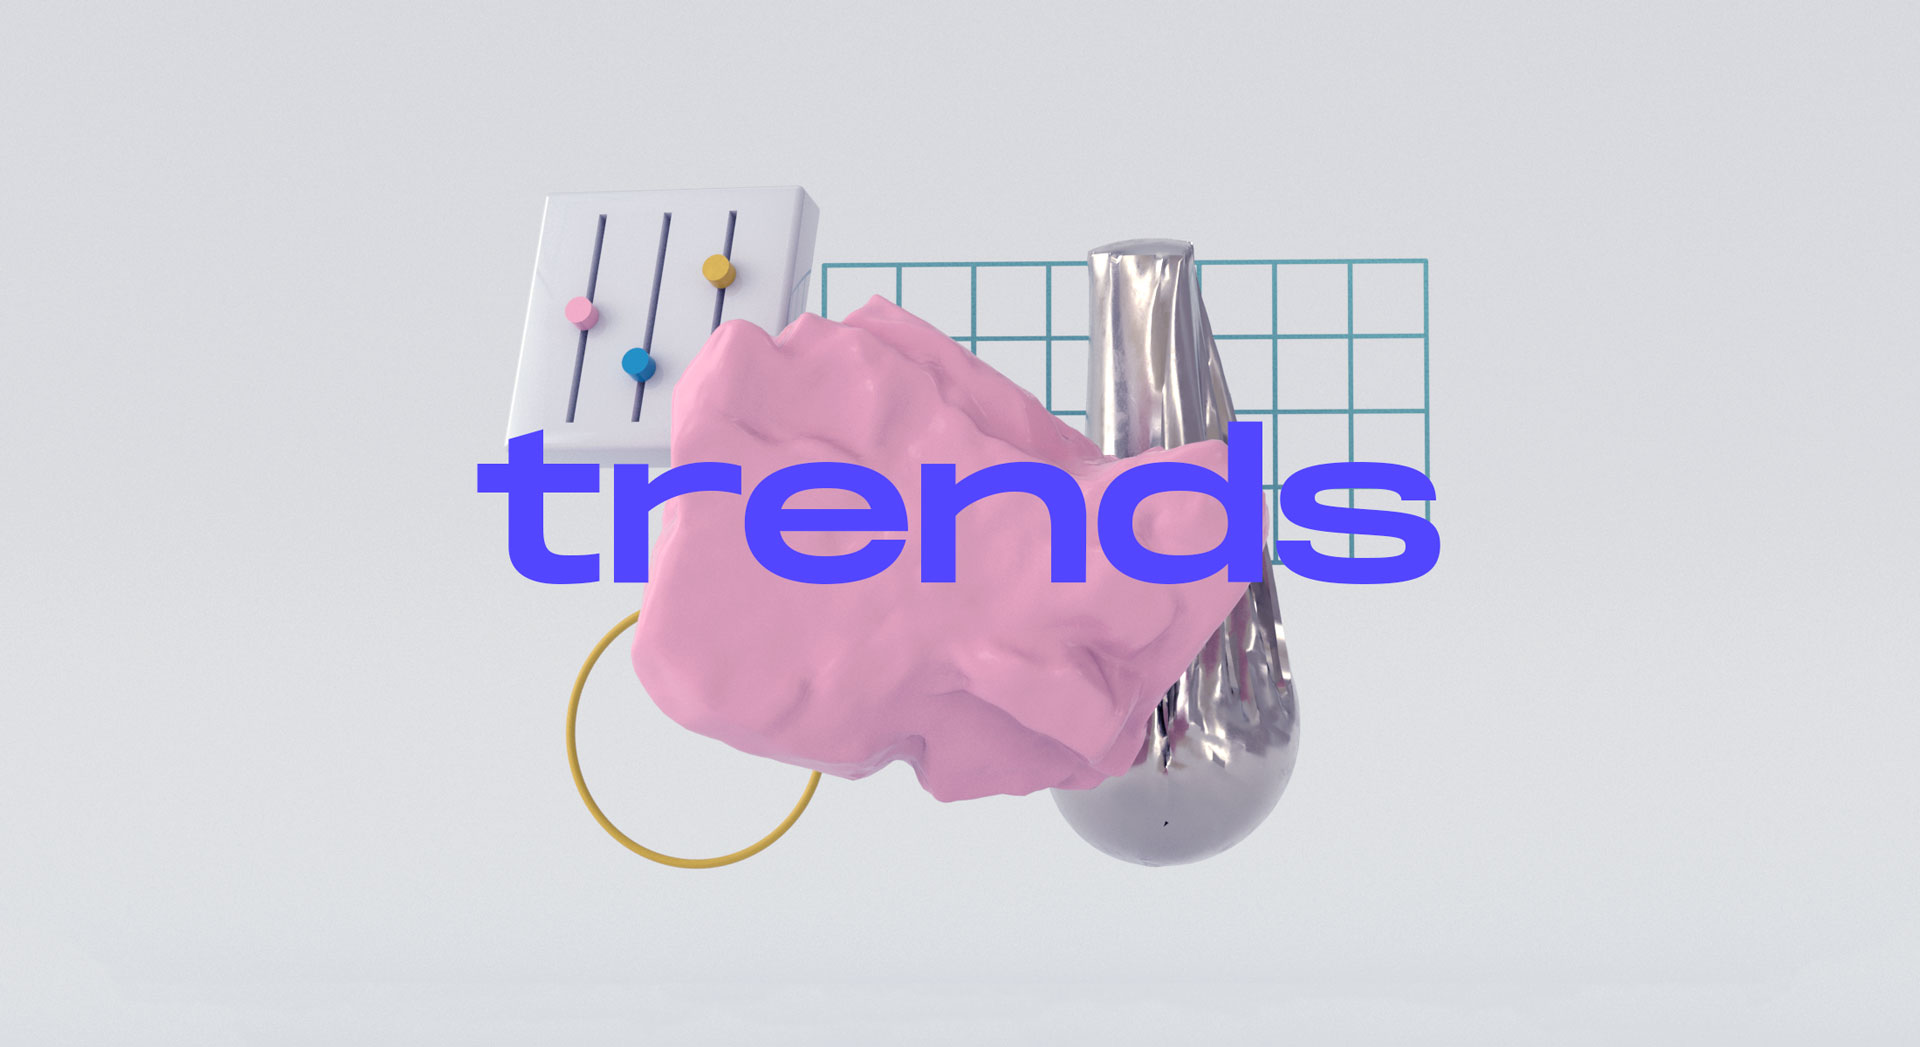 Web Design Trends 2019: Voice Interfaces, Image Search, Alexa and other crazy things that are rocking our world.